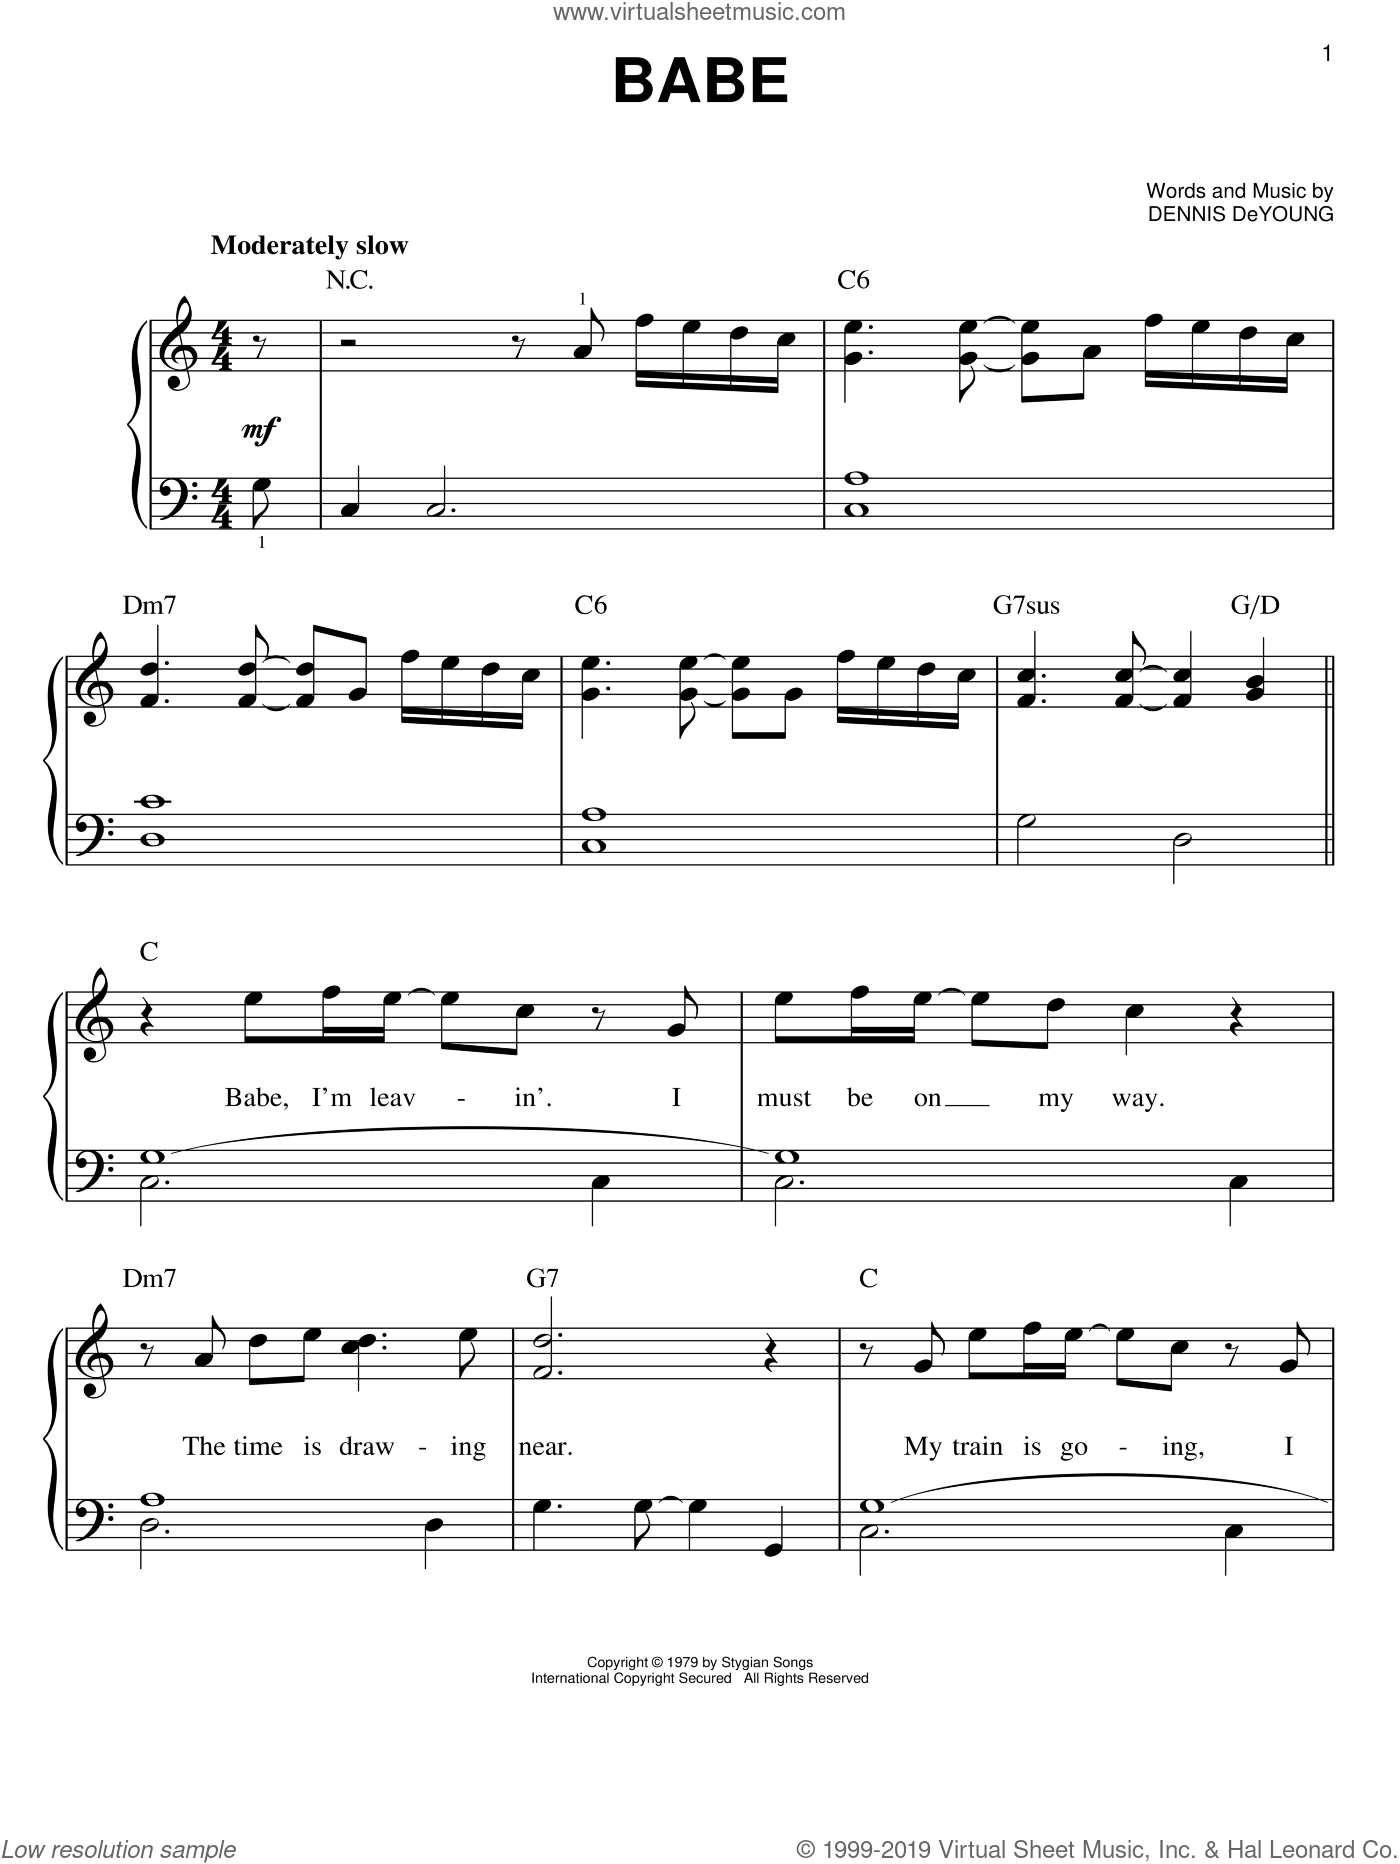 Babe sheet music for piano solo (chords) by Dennis DeYoung